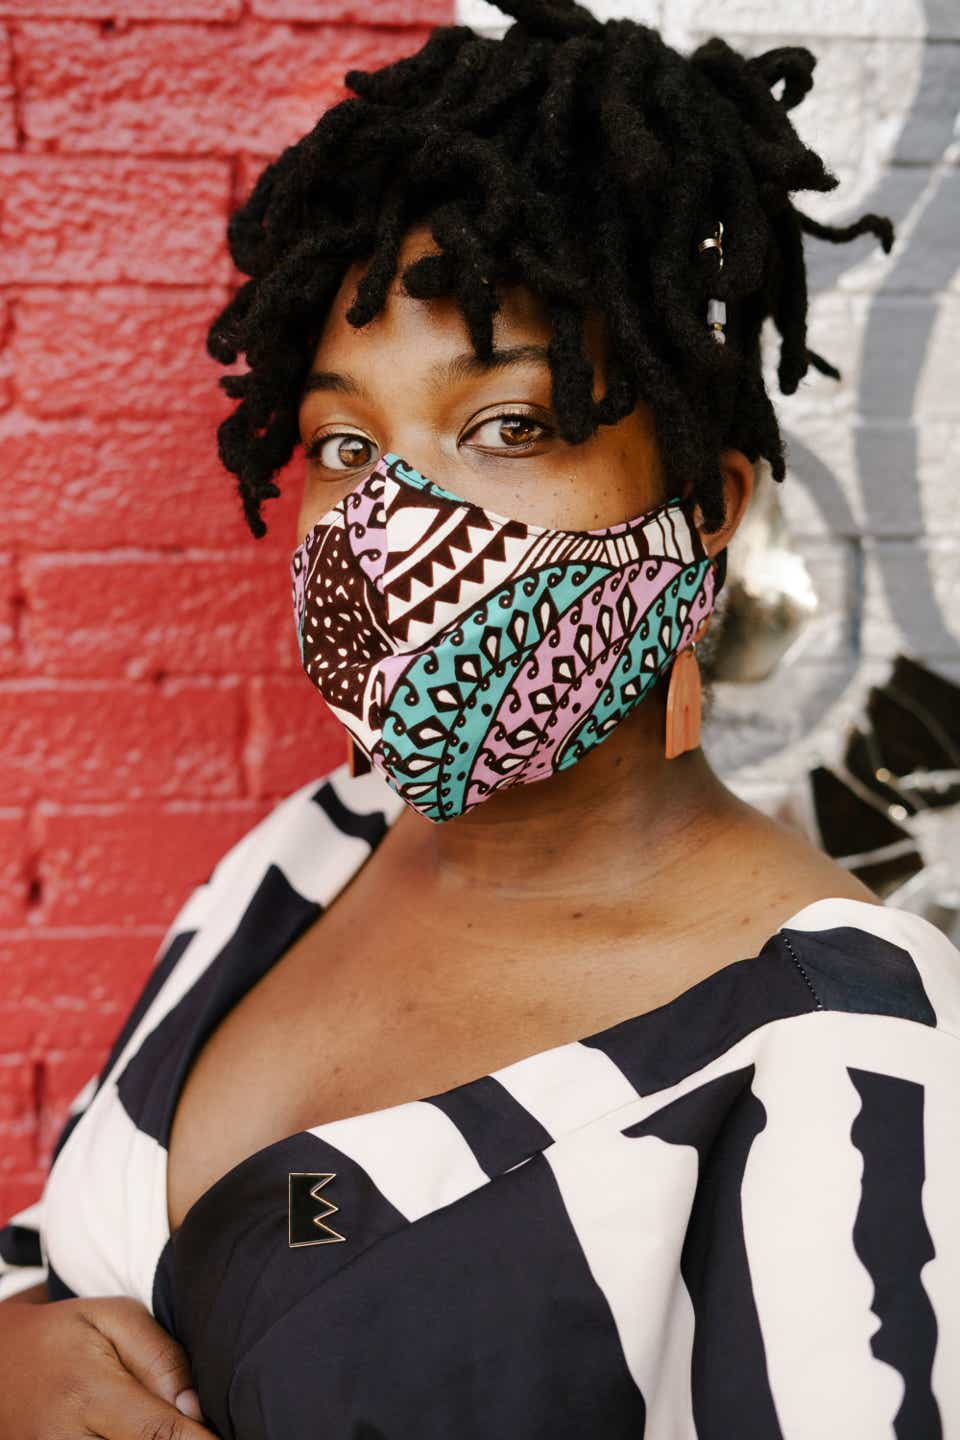 This is an up-close shot of Ayanna, who is wearing a multi-colored, geometric-patterned face mask, with orange earrings, and a black-and-white dress.